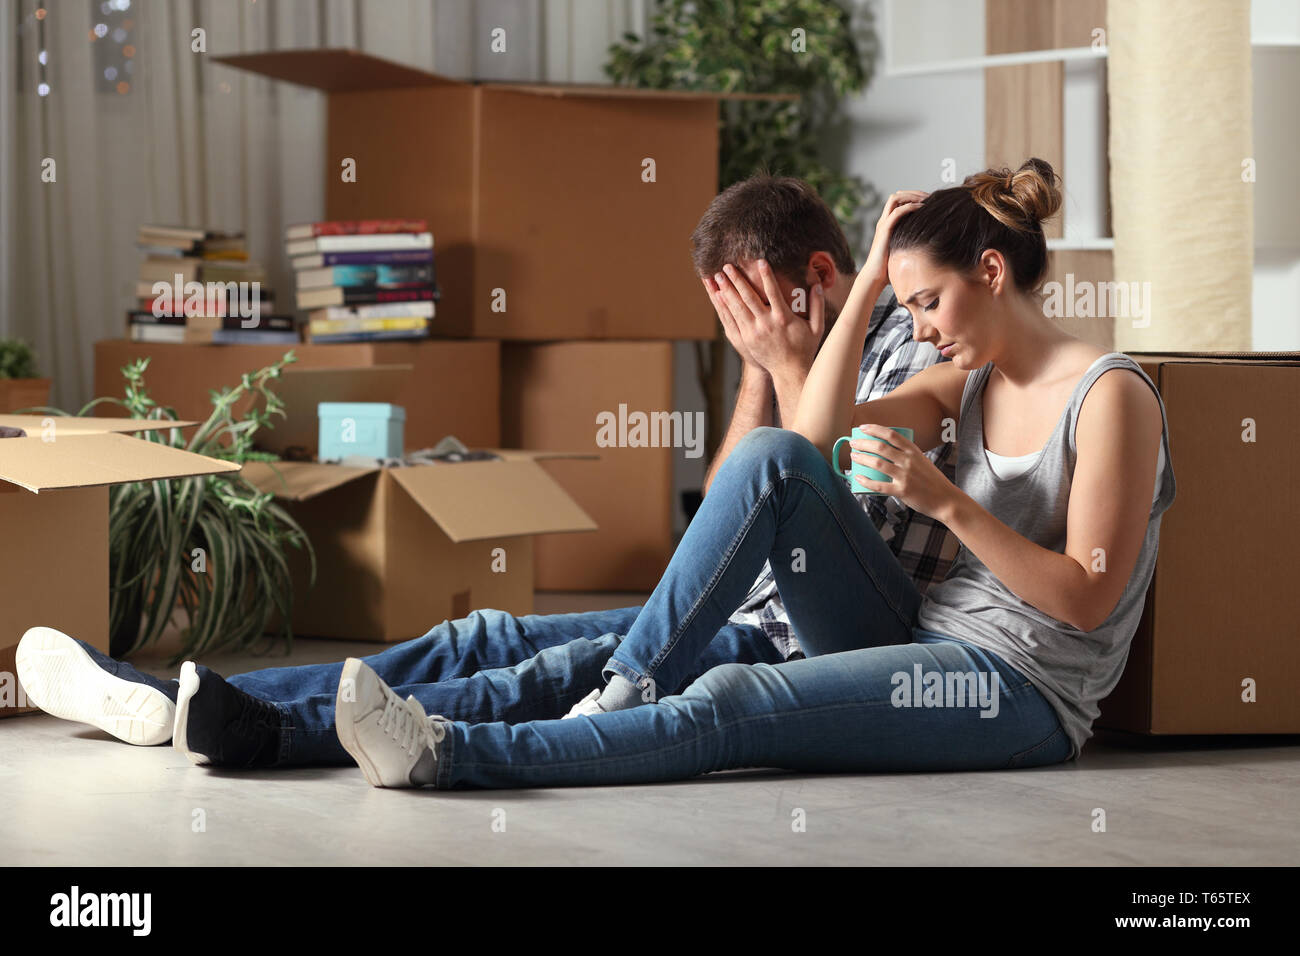 Sad evicted couple moving home complaining sitting on the floor in the night - Stock Image